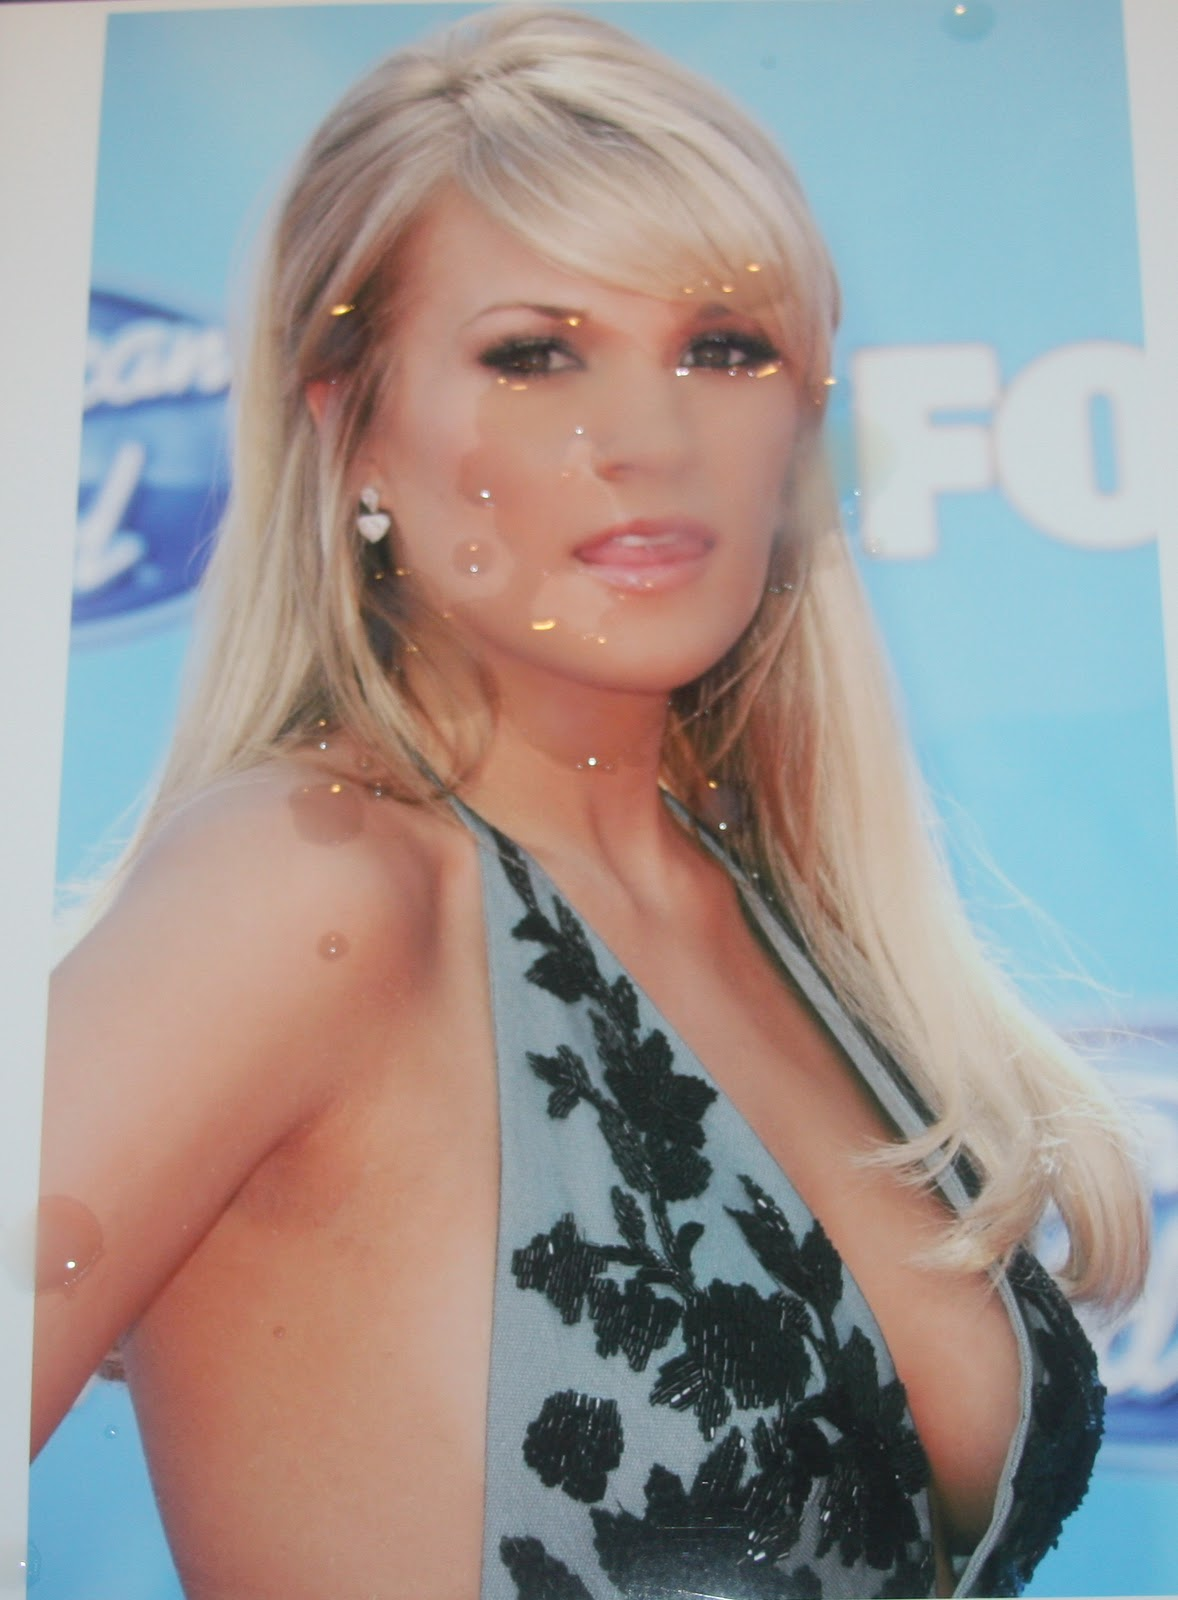 Carrie Underwood Carrie Underwood Cleavage Pics